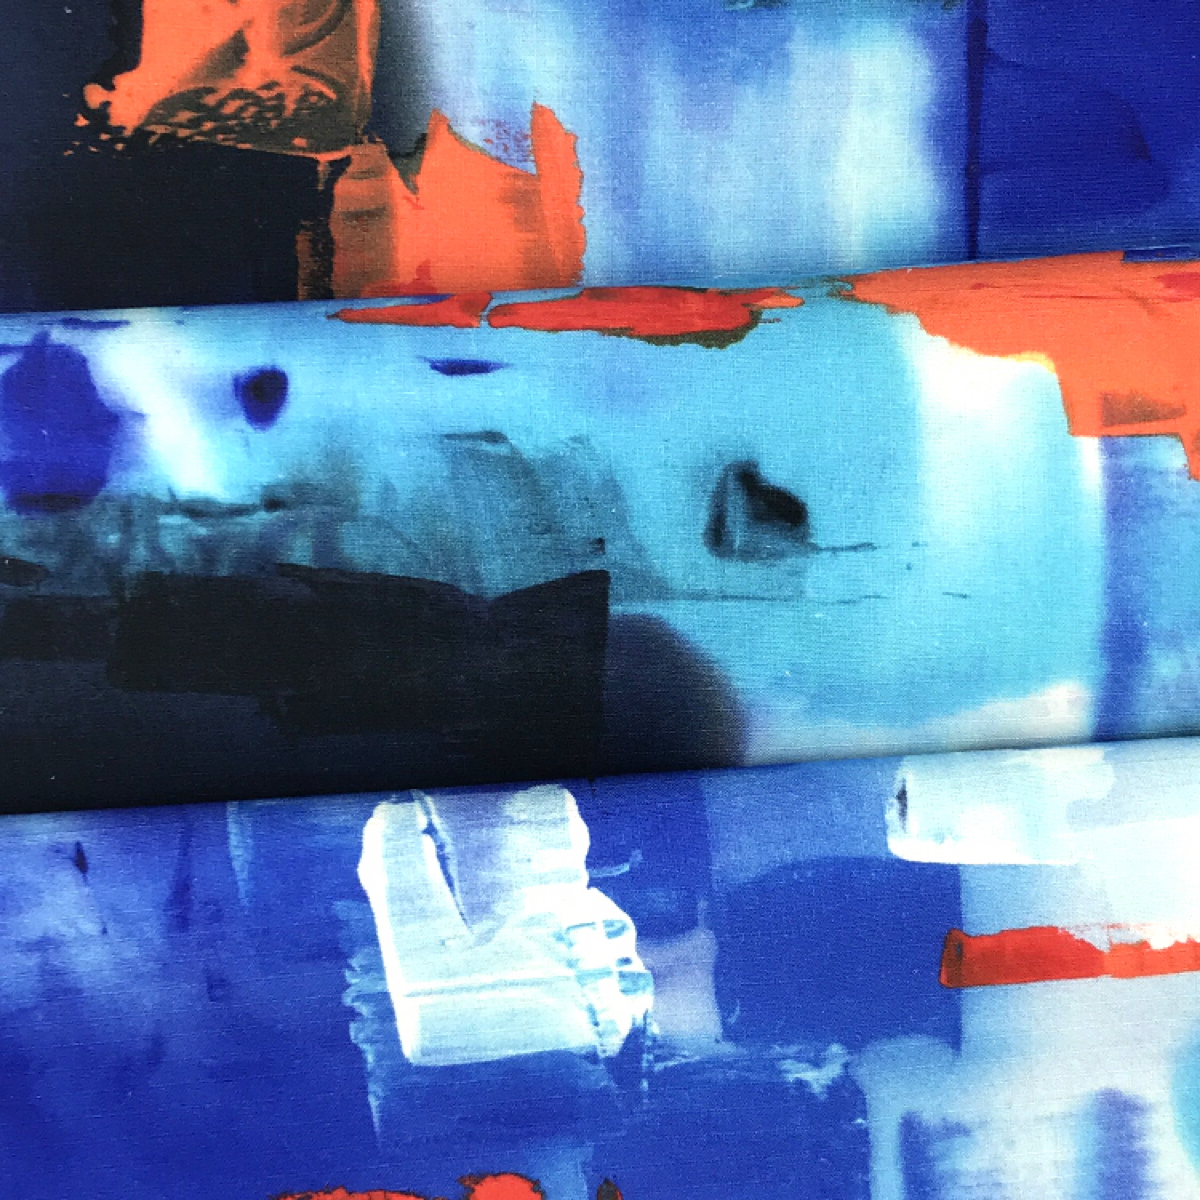 Abstract Painting Blue, White, and Orange Printed Woven Textile by Industry by Clerici Tessuto